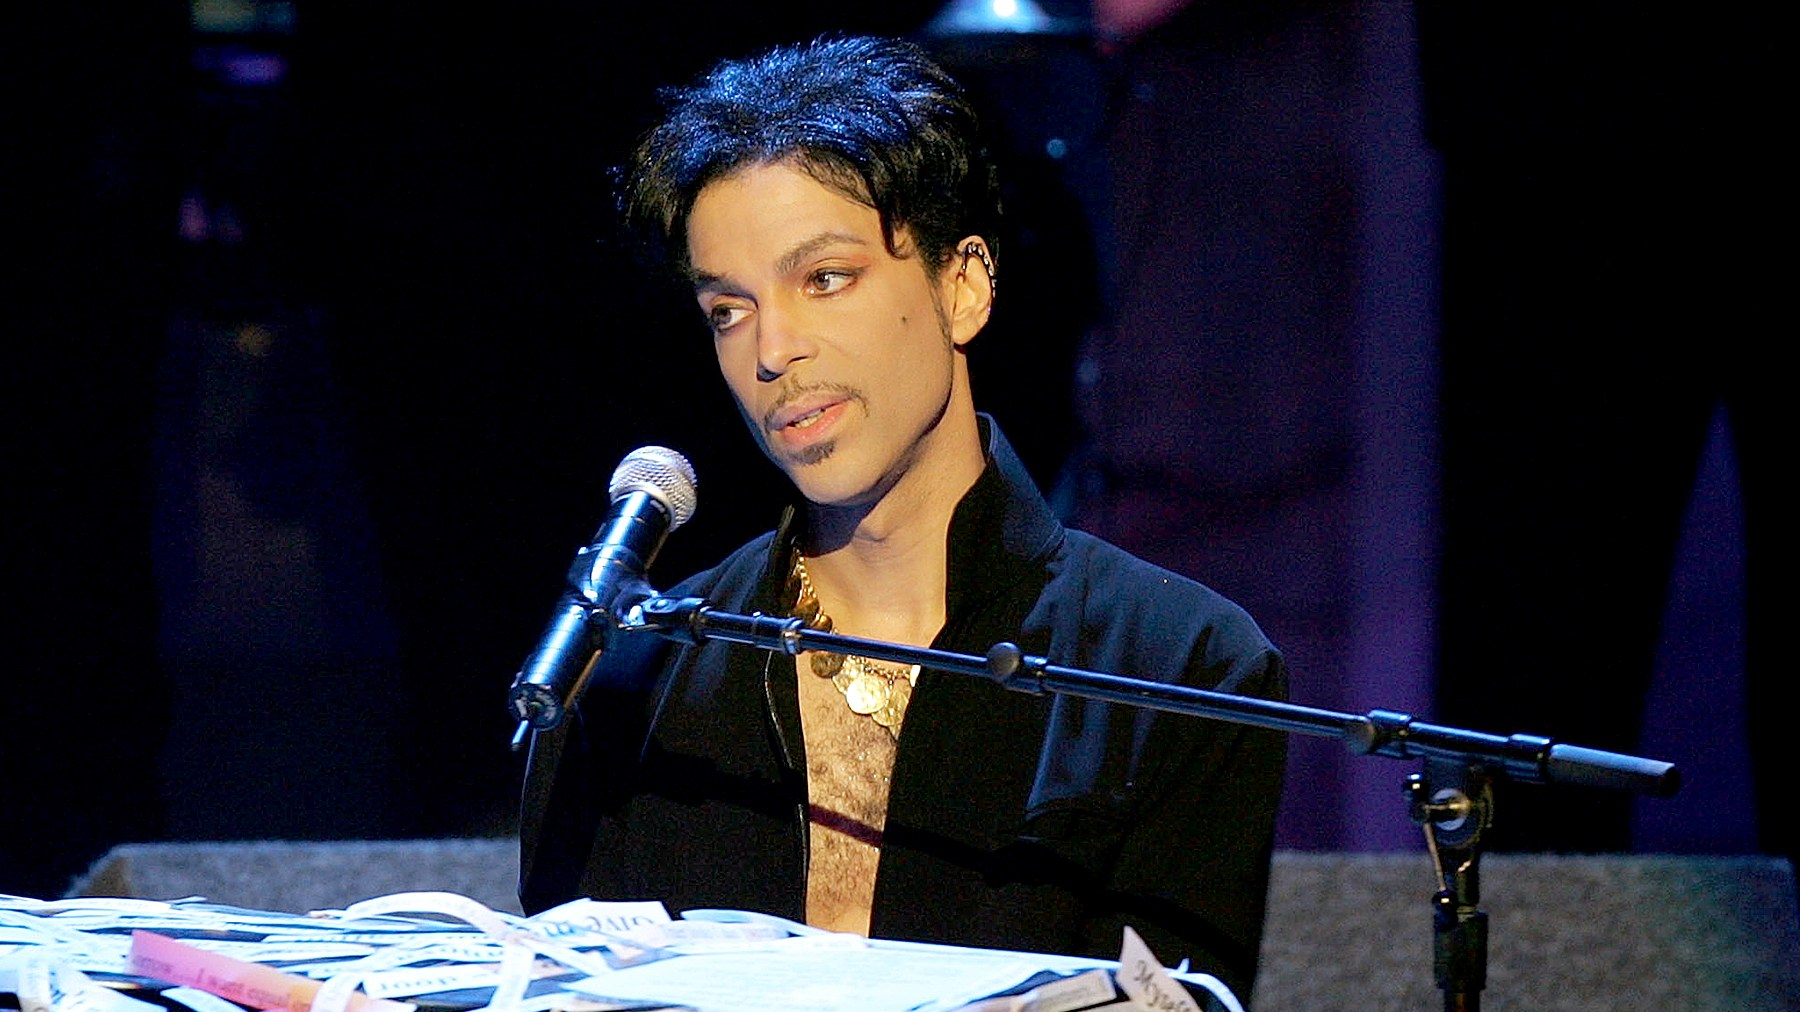 Prince performs on stage at the 36th NAACP Image Awards at the Dorothy Chandler Pavilion on March 19, 2005 in Los Angeles, California.